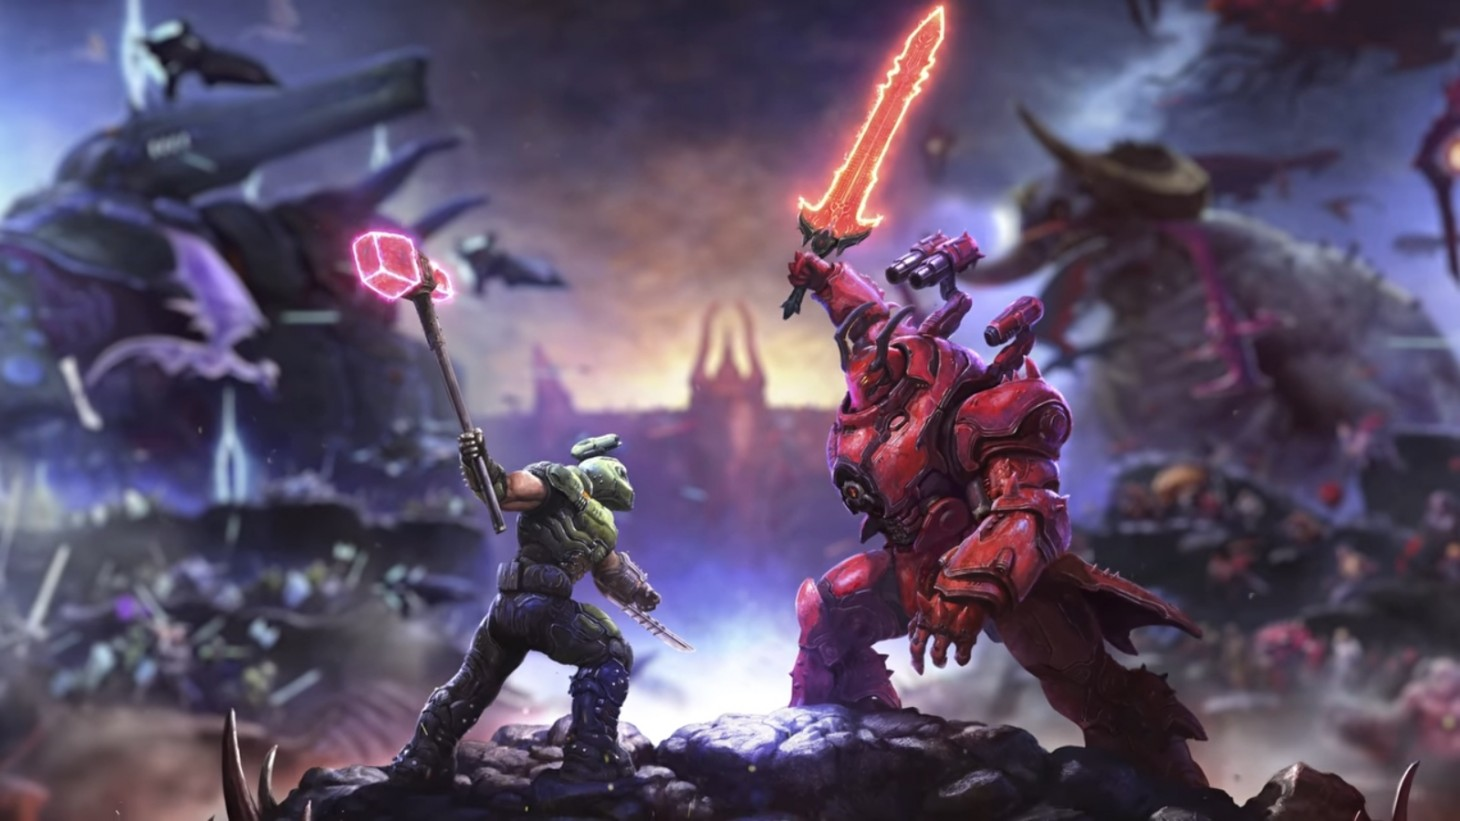 DOOM Eternal The Ancient Gods Part 2 vient question, voici la bande-annonce de lancement